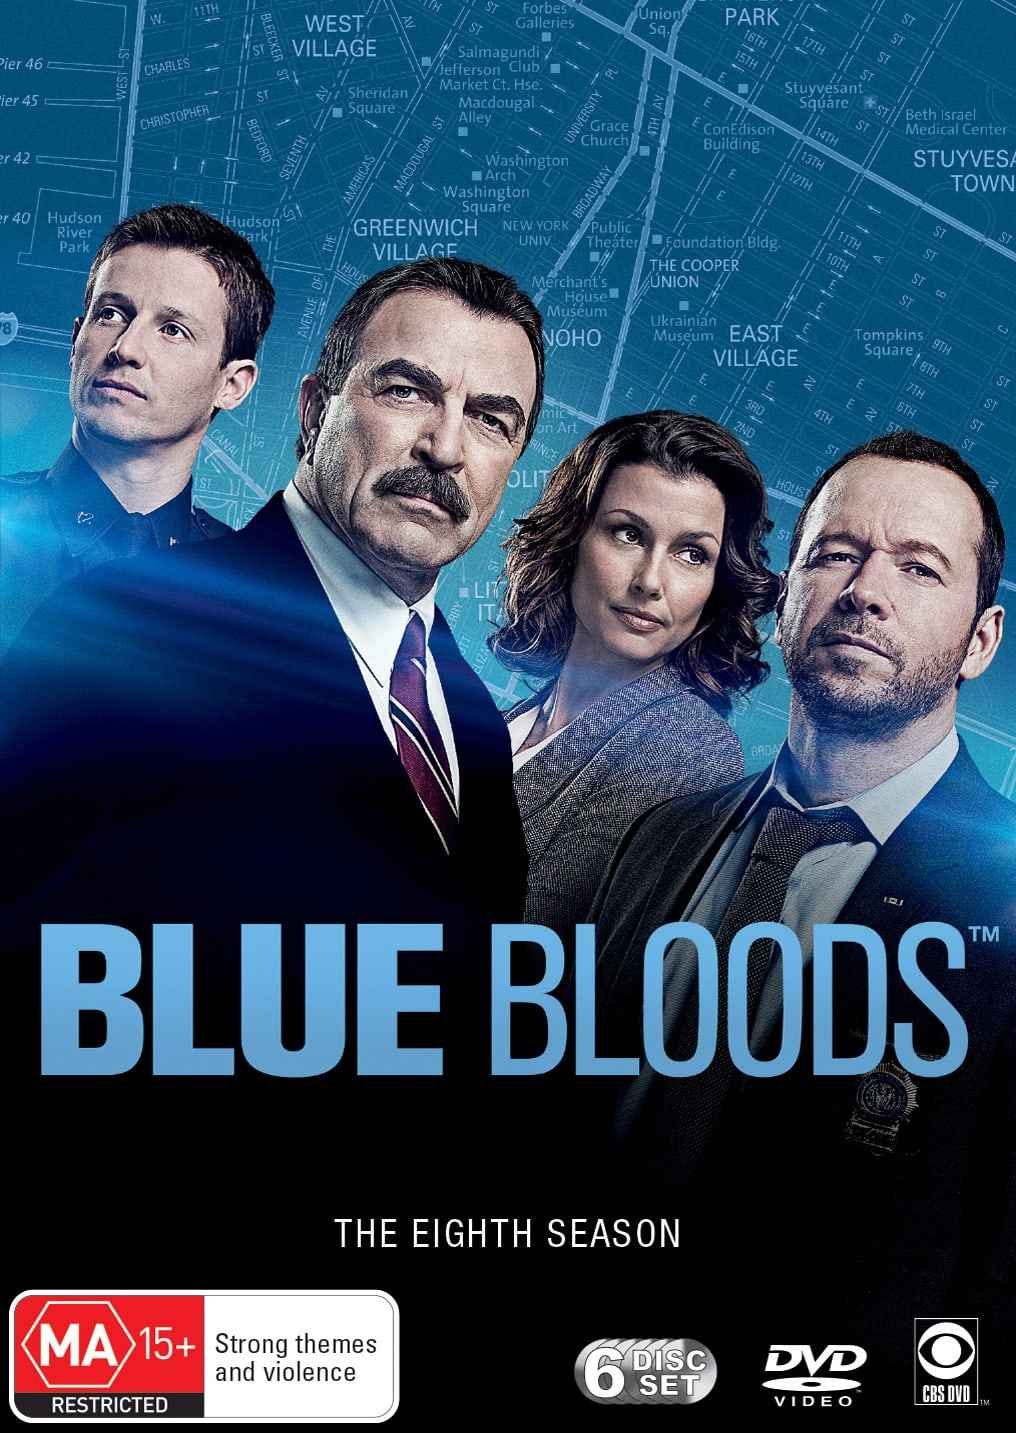 Blue Bloods: The Eighth Season (Box Set) [DVD]